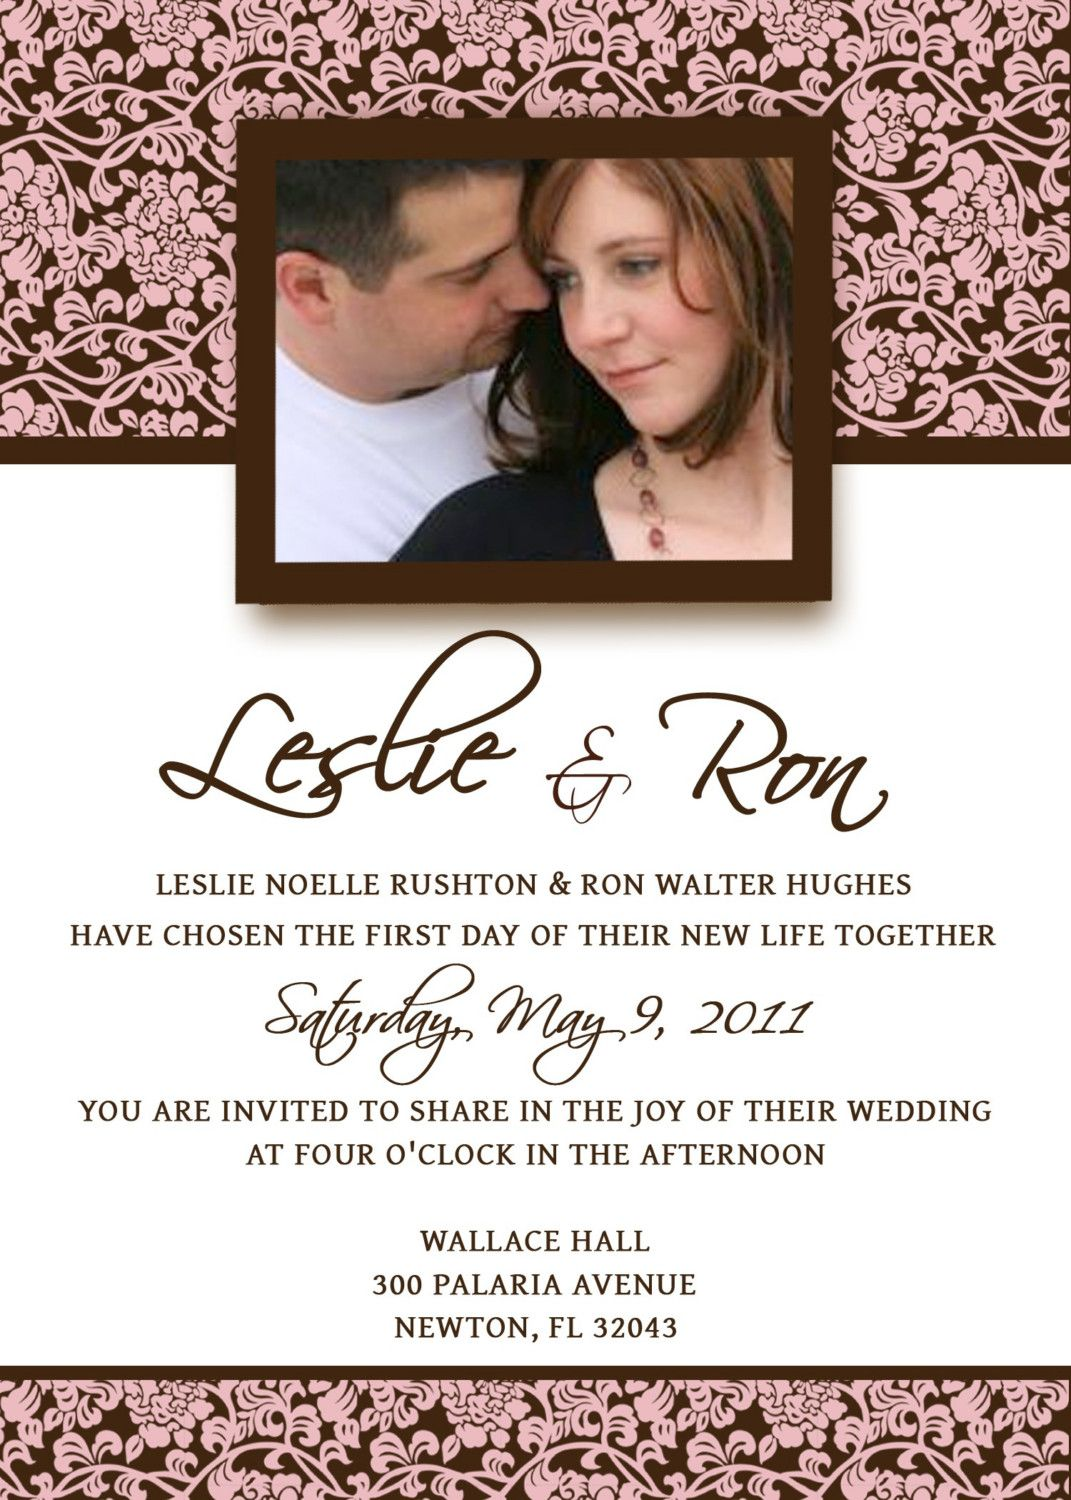 Homemade Wedding Invitation Template | invitation templates cool ...